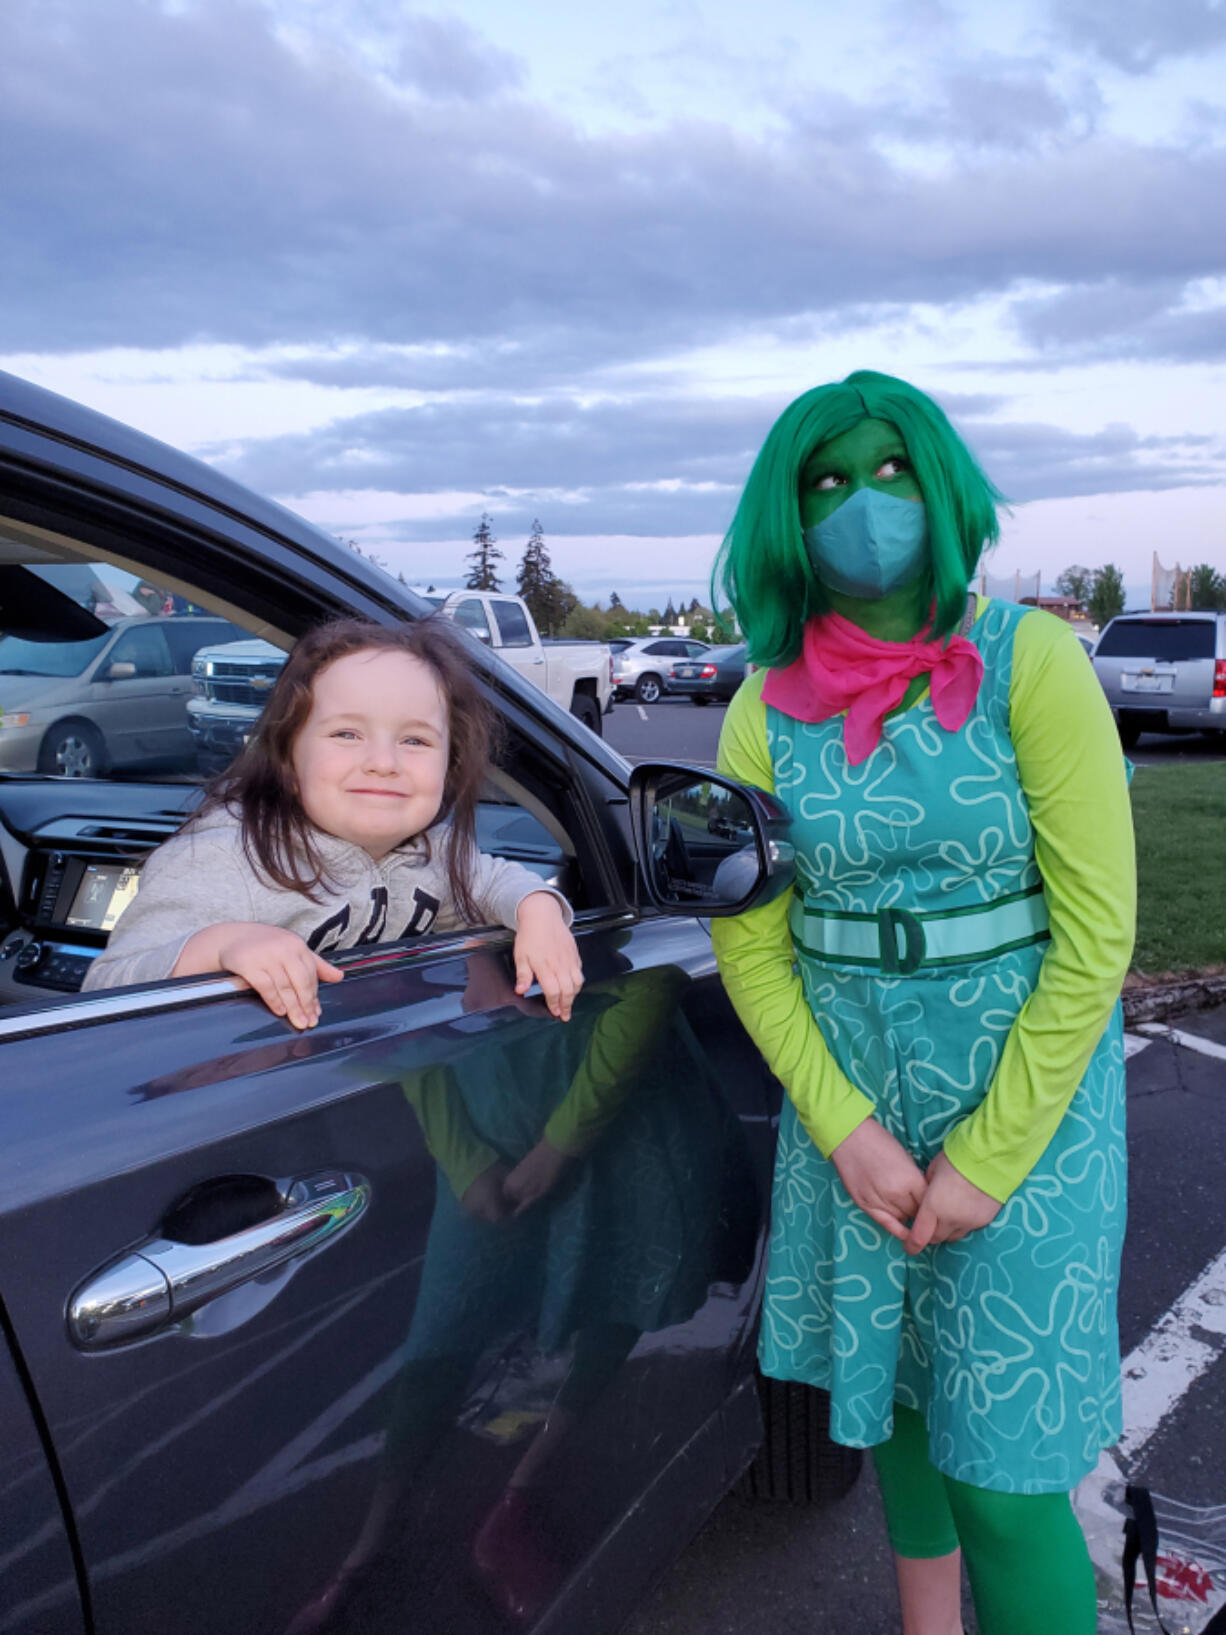 """BATTLE GROUND: The character Disgust from the movie """"Inside Out"""" visited with families at a drive-in movie event on May 7."""